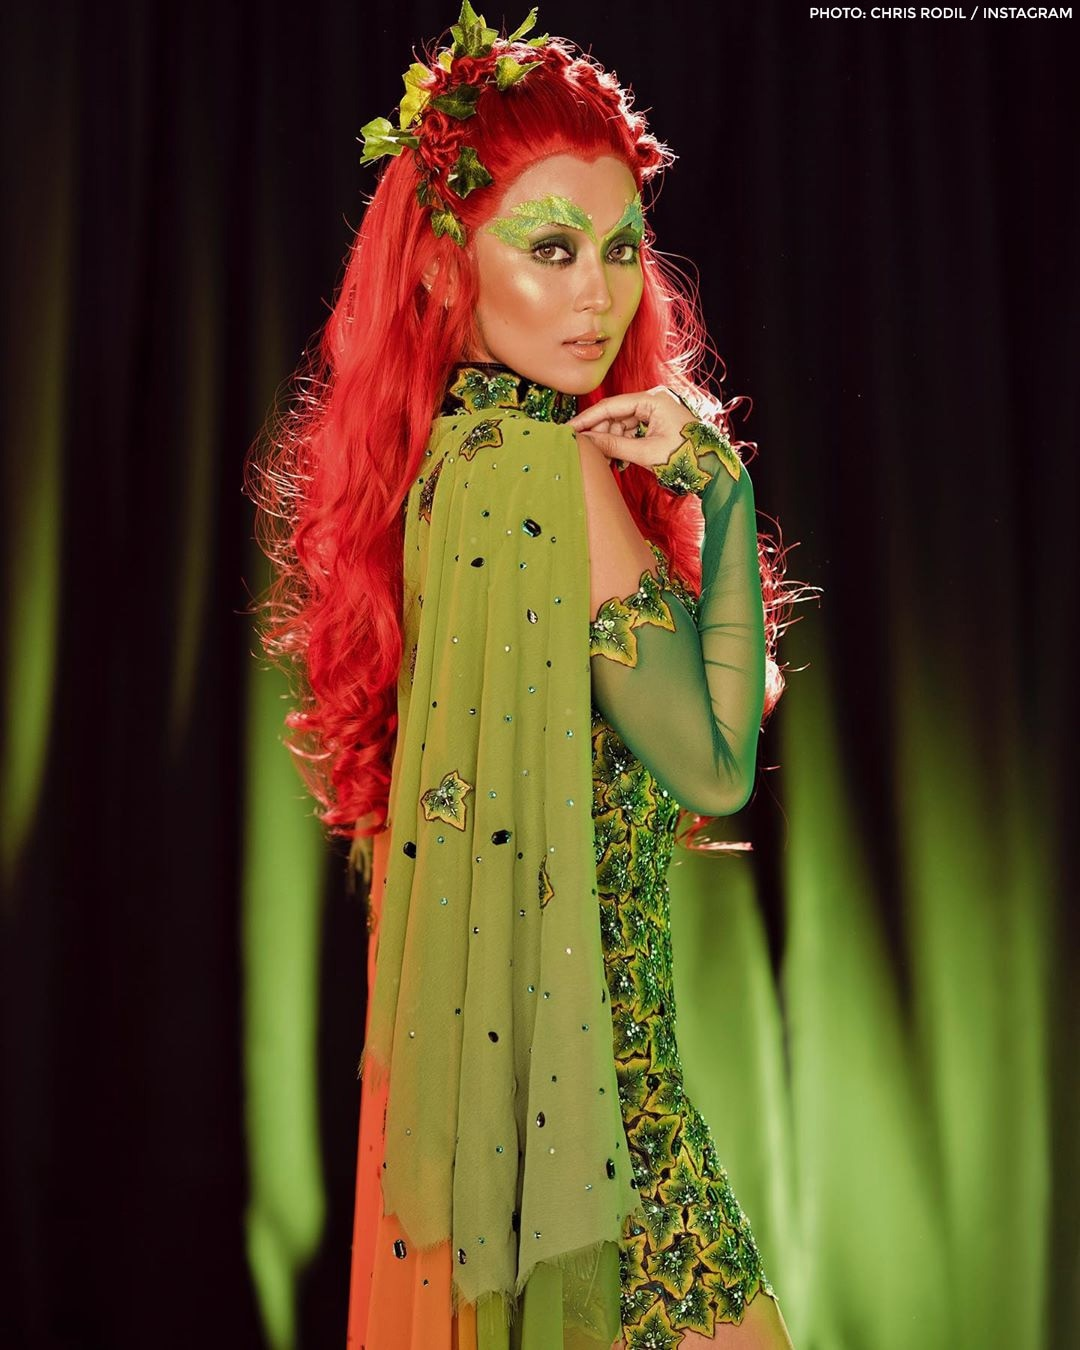 Kathryn Bernardo transforms into DC Comics' Poison Ivy